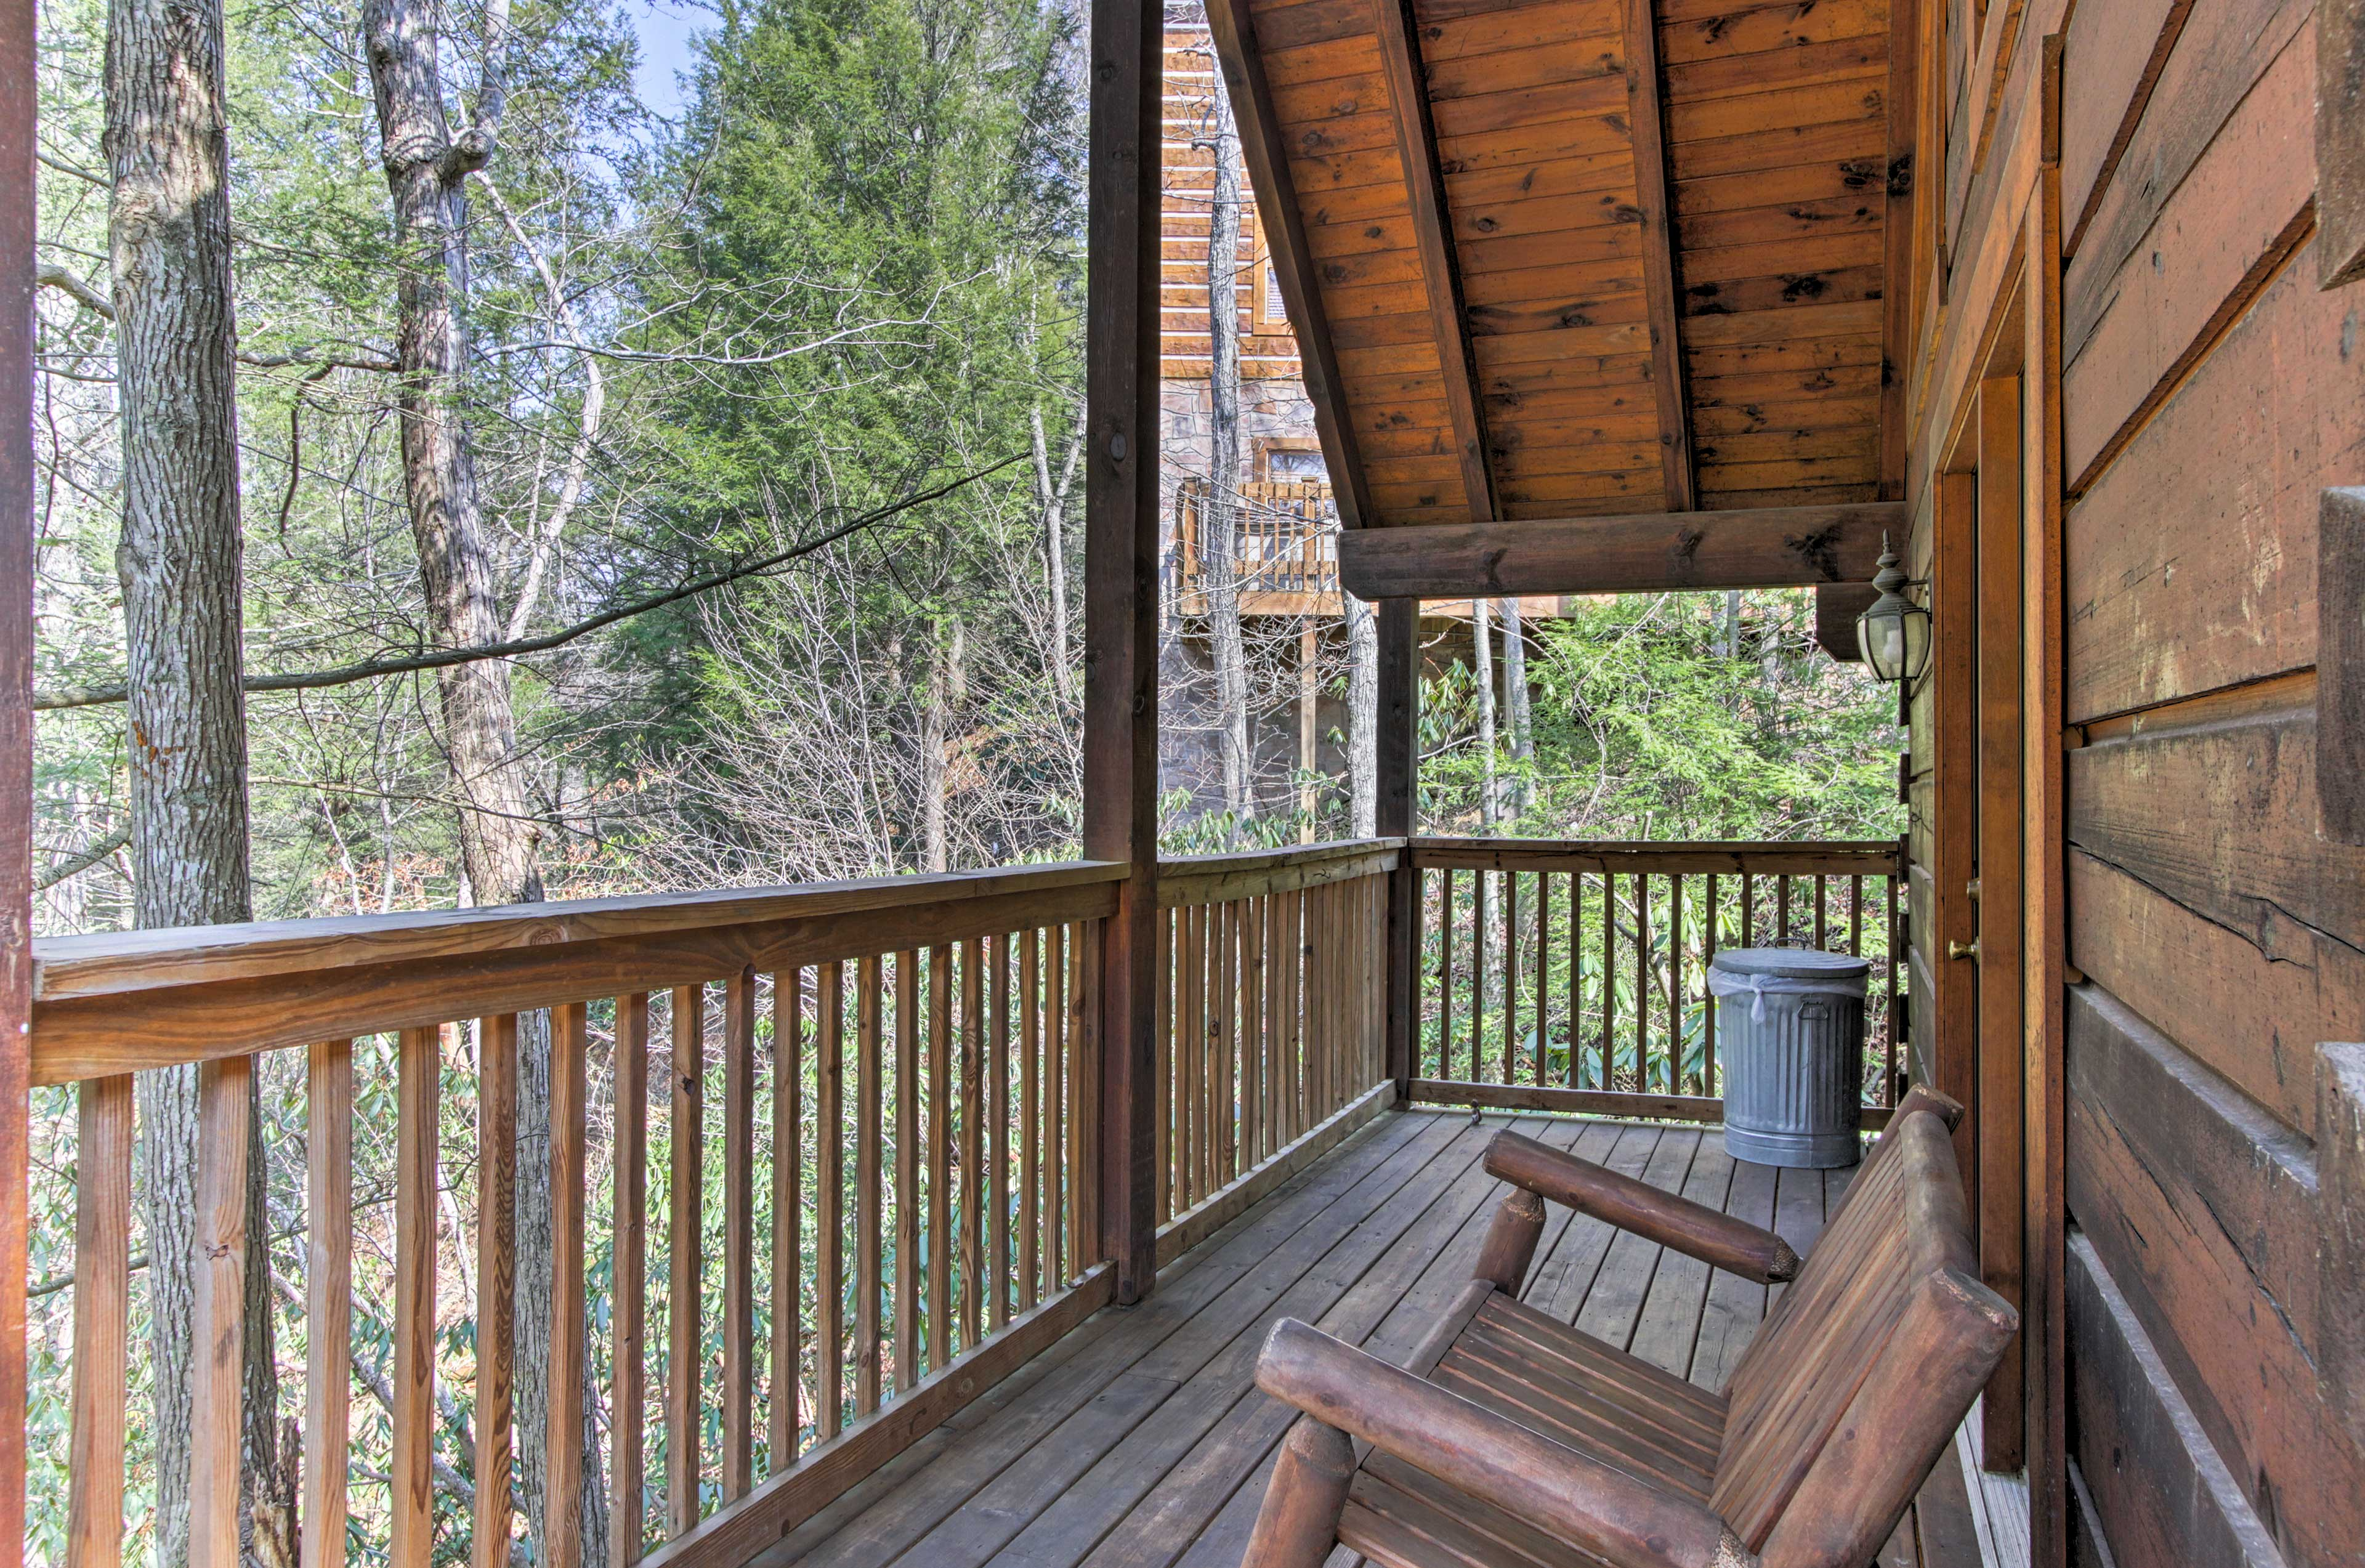 You'll be able to sip your morning coffee in mountain peace and quiet!